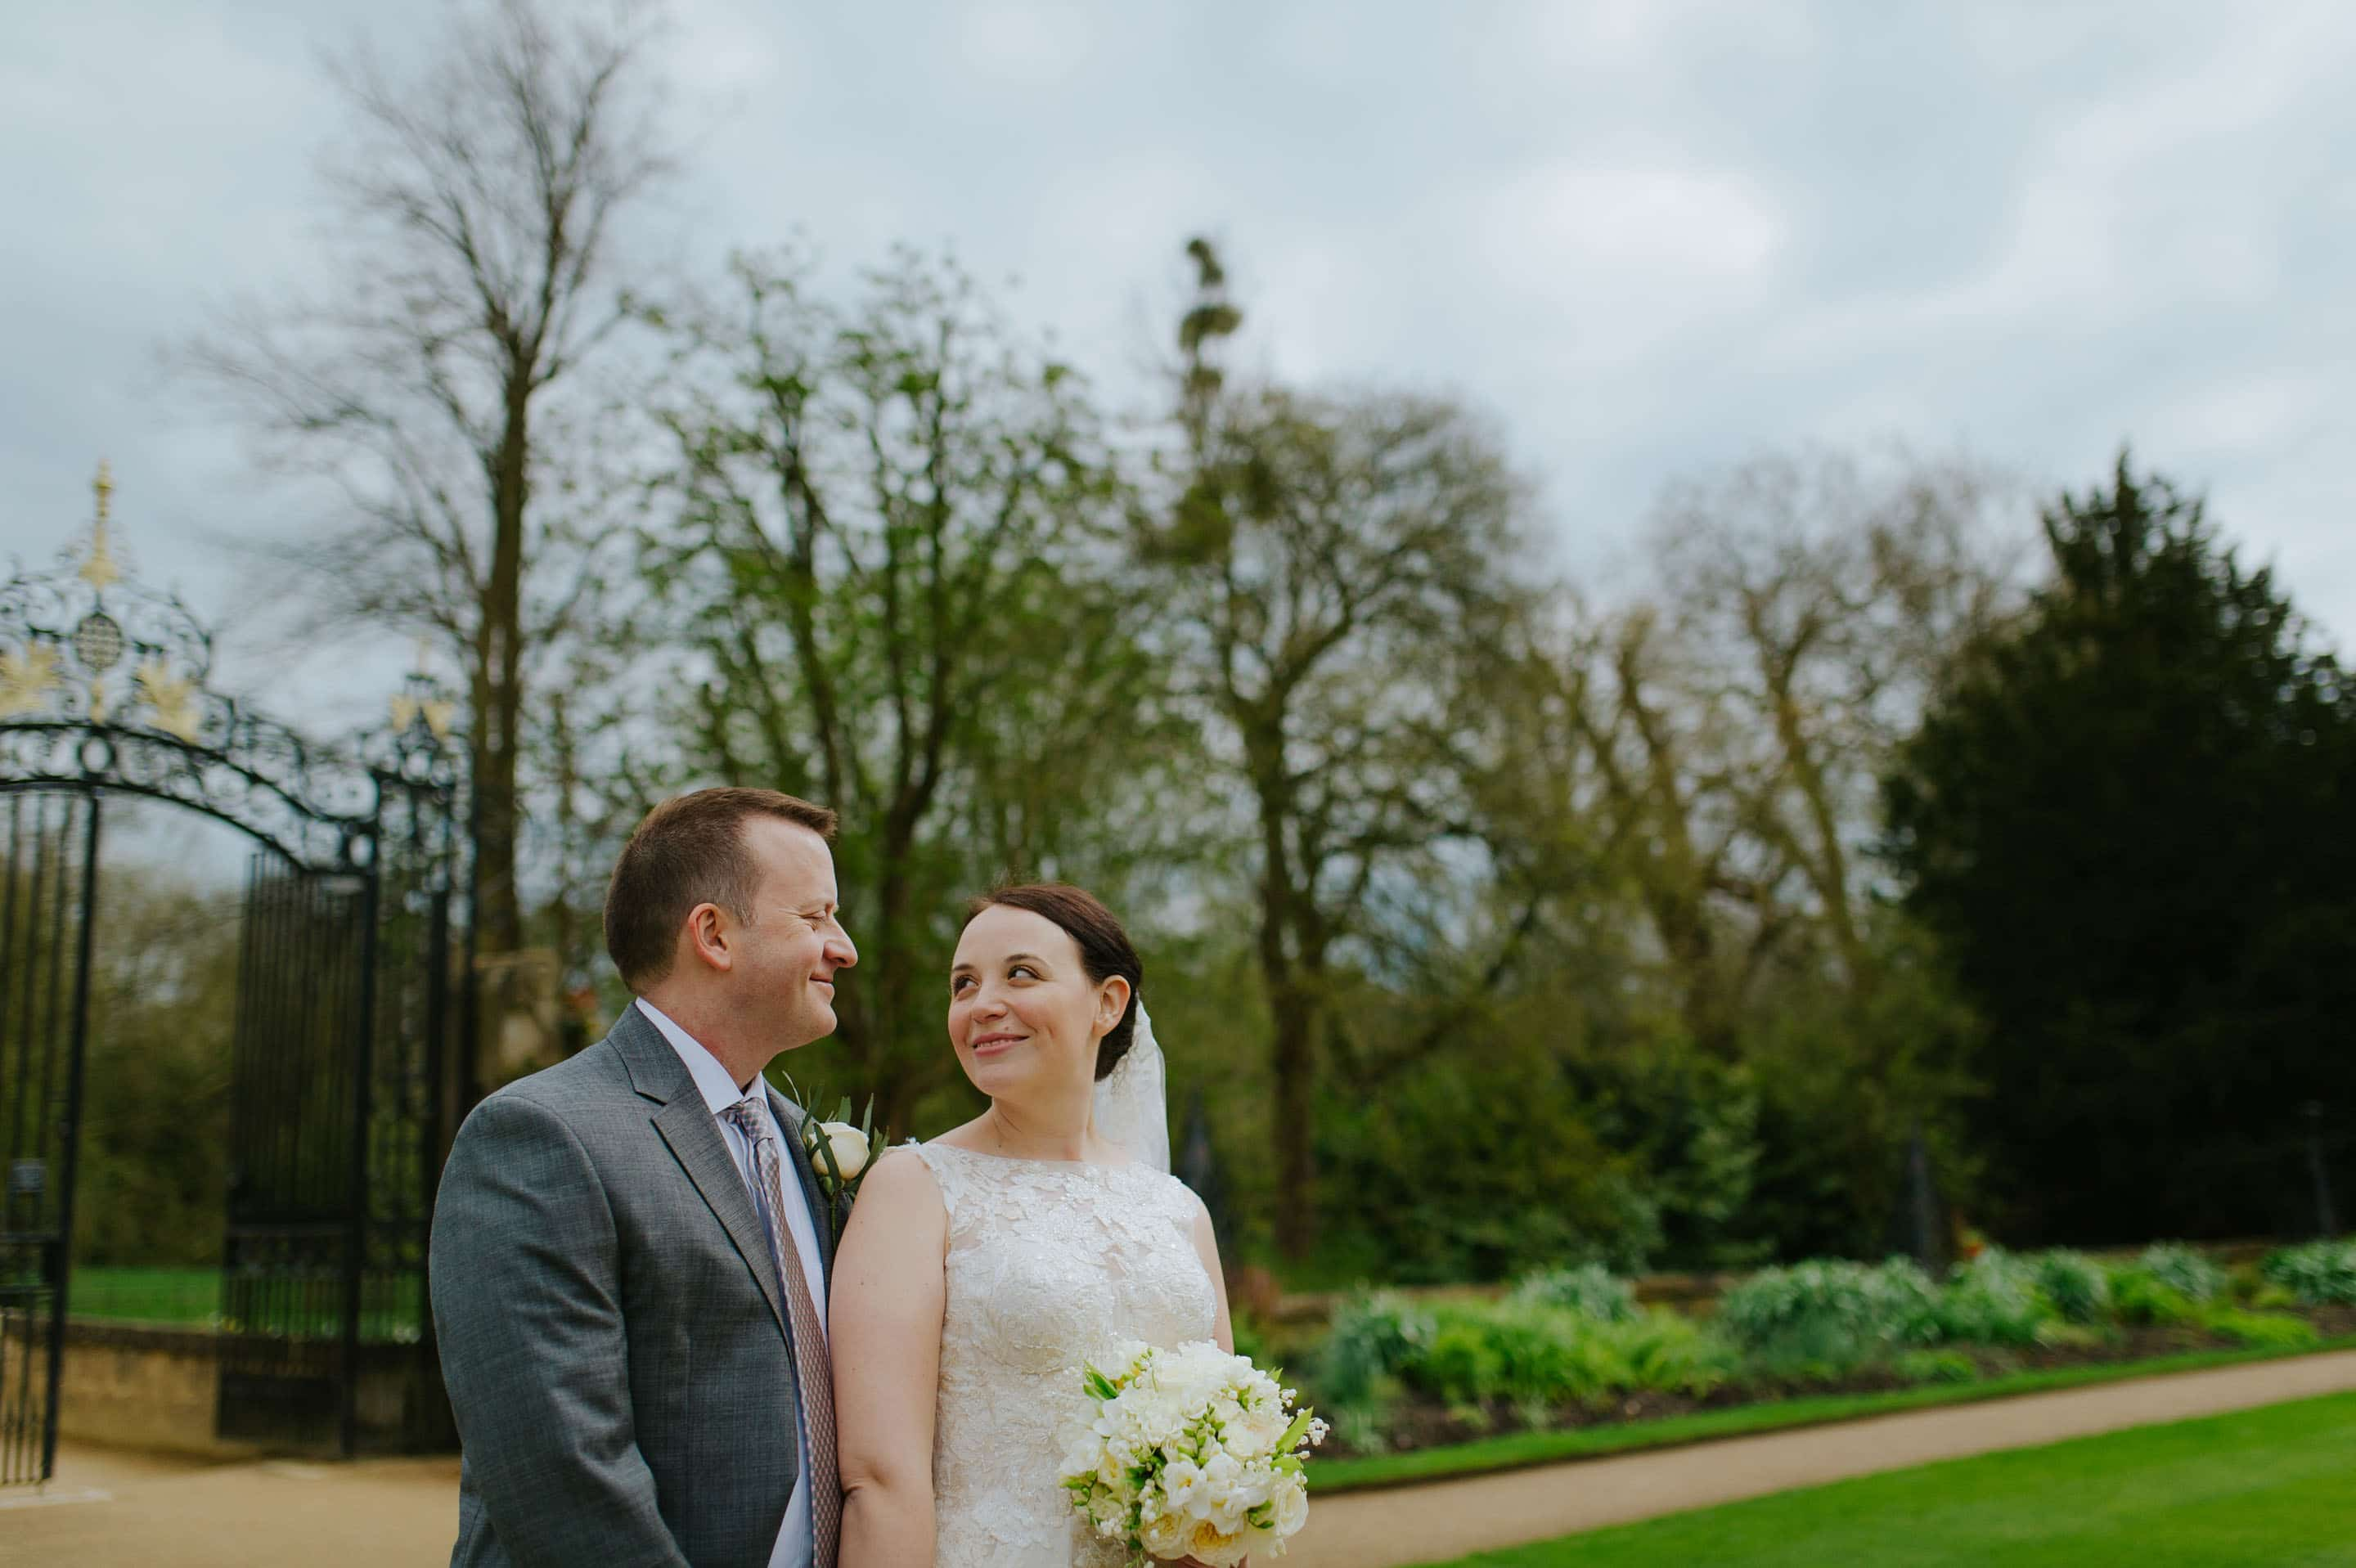 Tommie + Virginia | Wedding at Magdalen College in Oxford 28